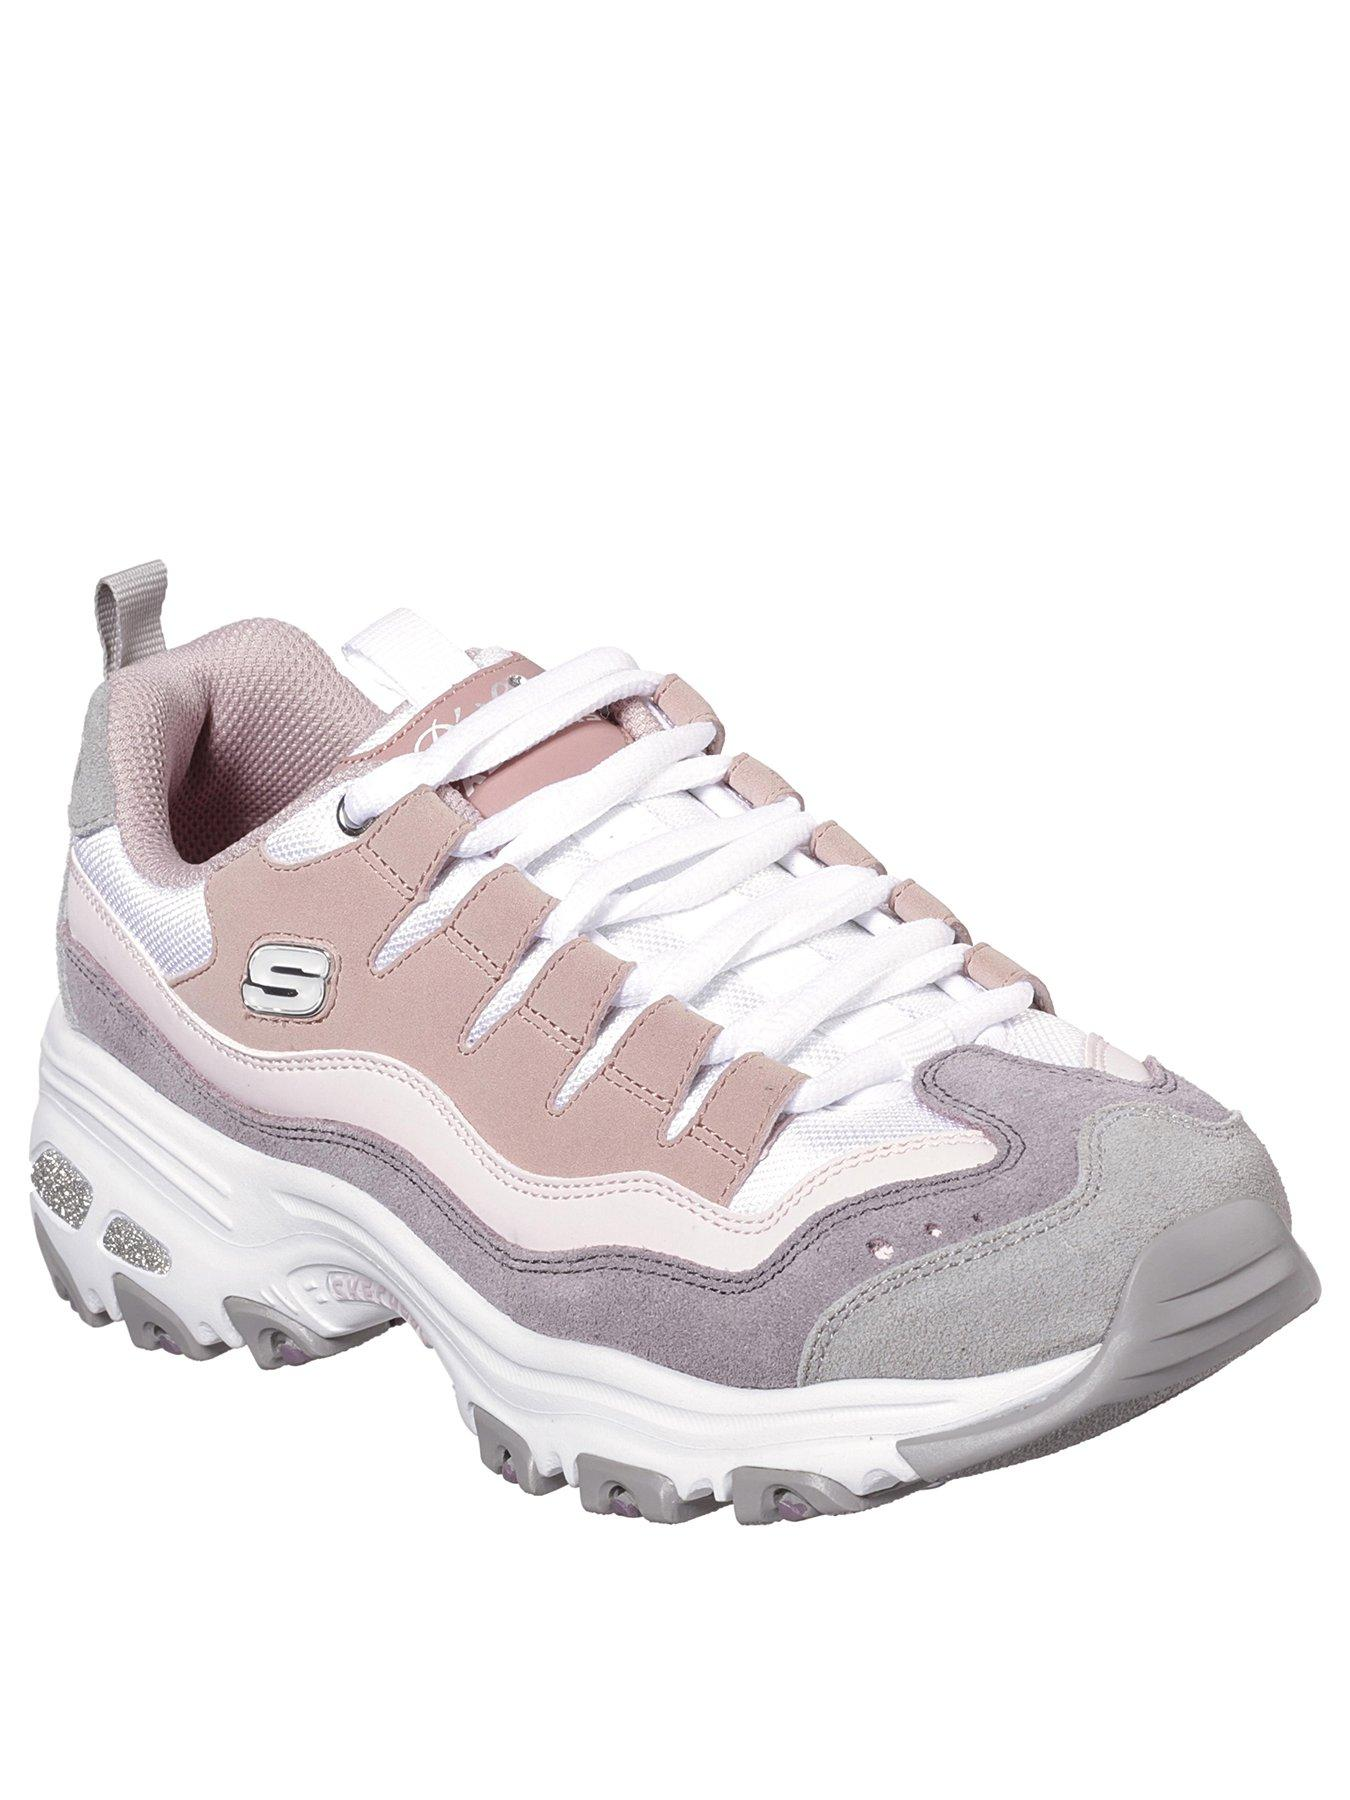 Skechers D'lites Sure Thing Trainers